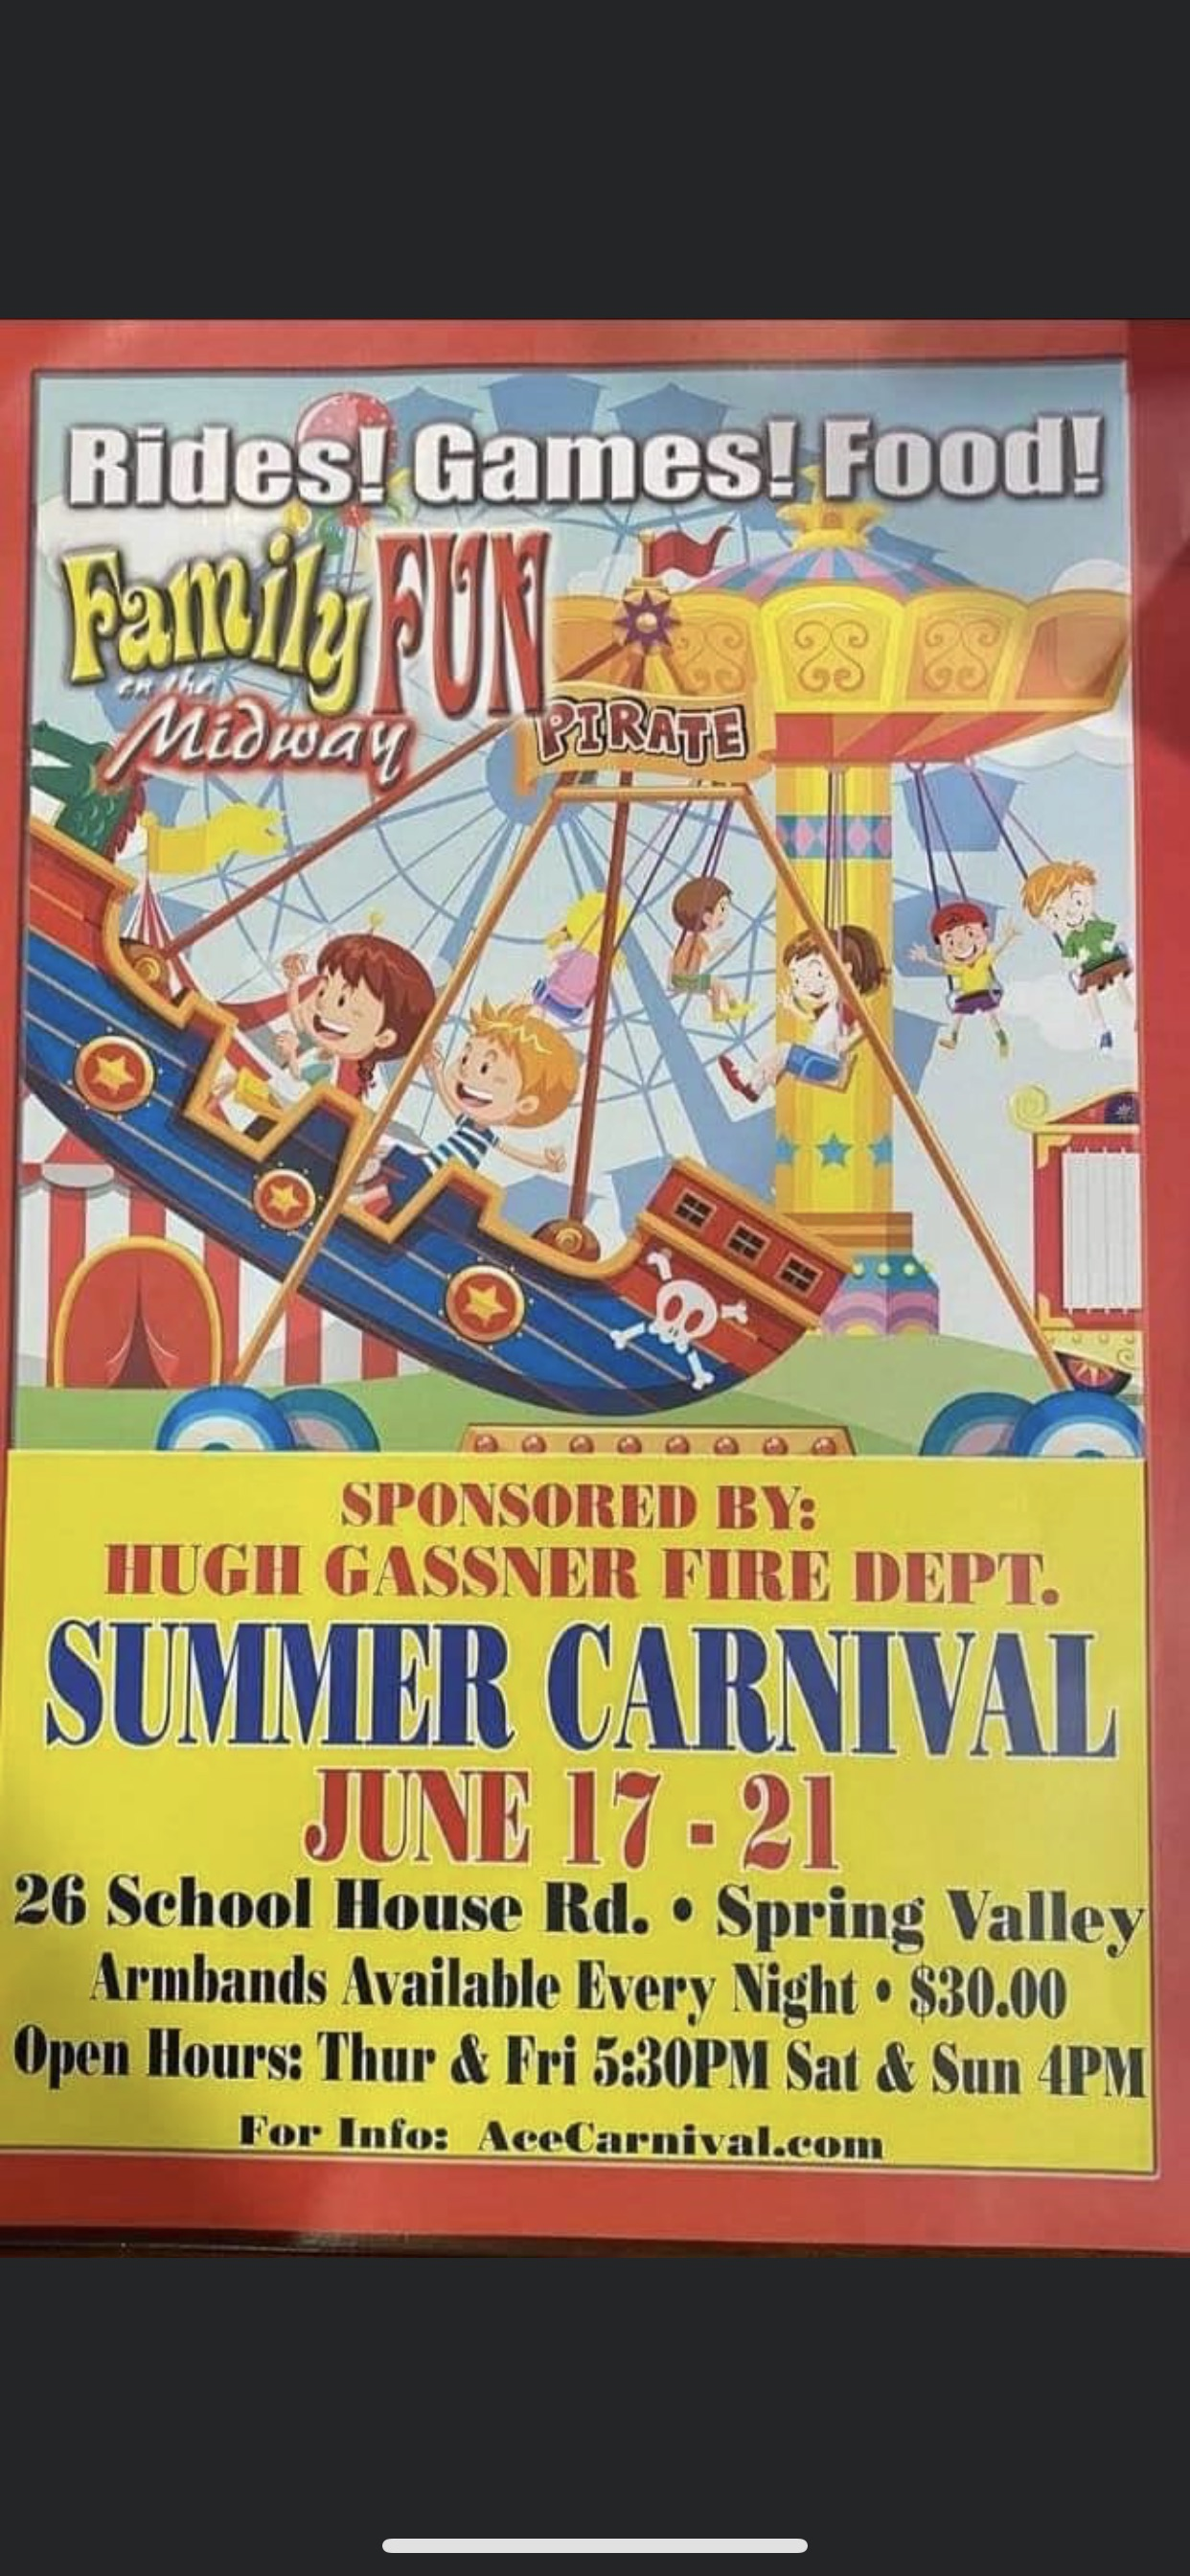 Summer Carnival at South Spring Valley Fire District